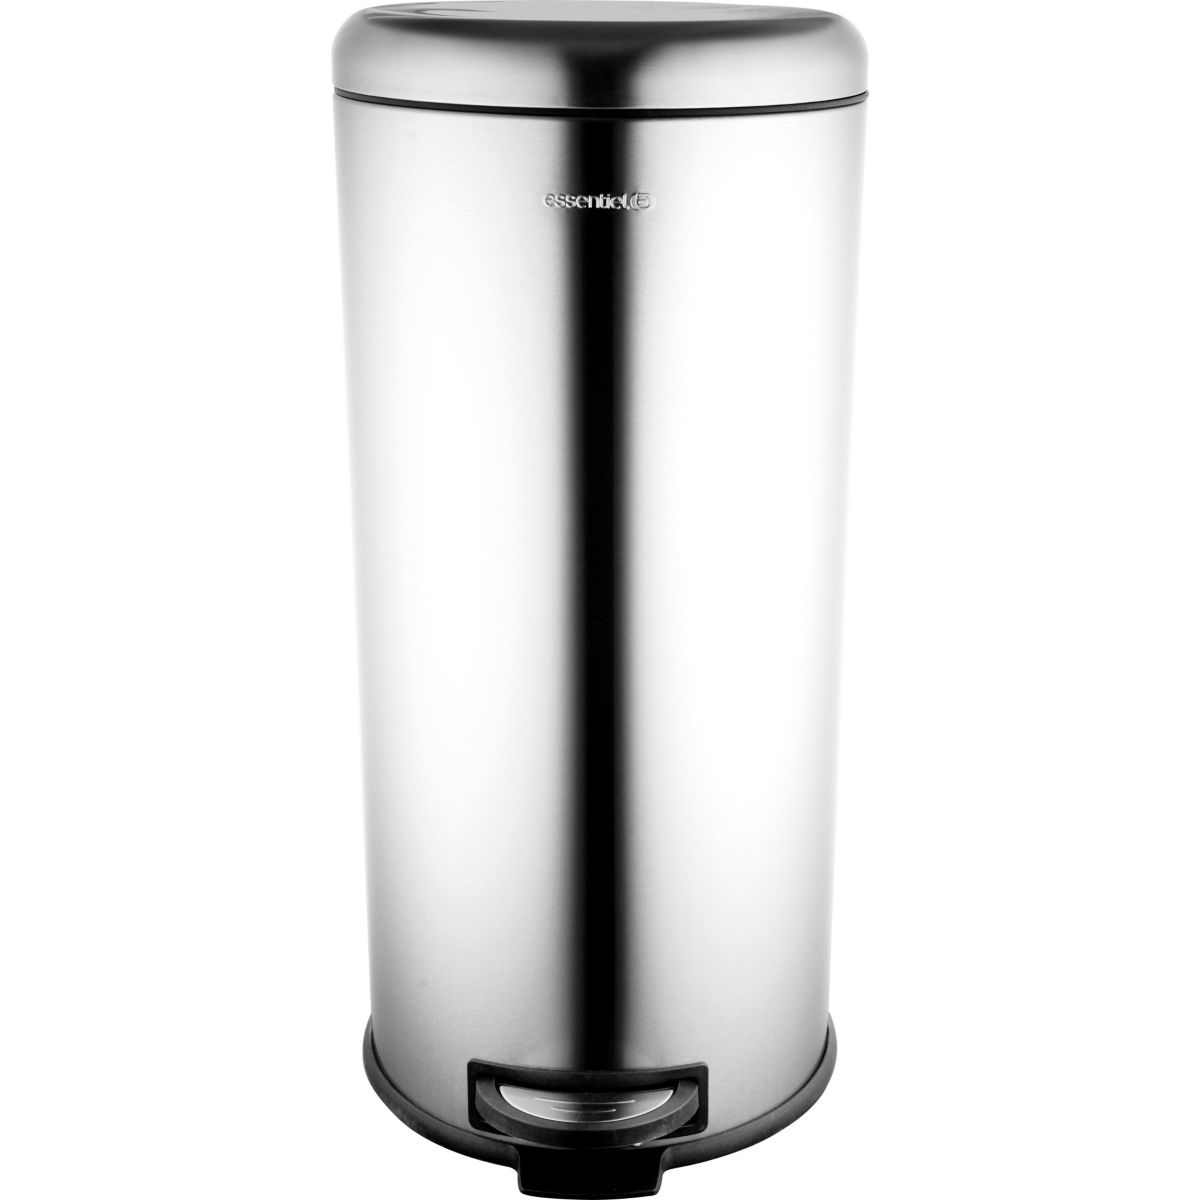 Poubelle ESSENTIELB ronde 30L Inox à péd (photo)